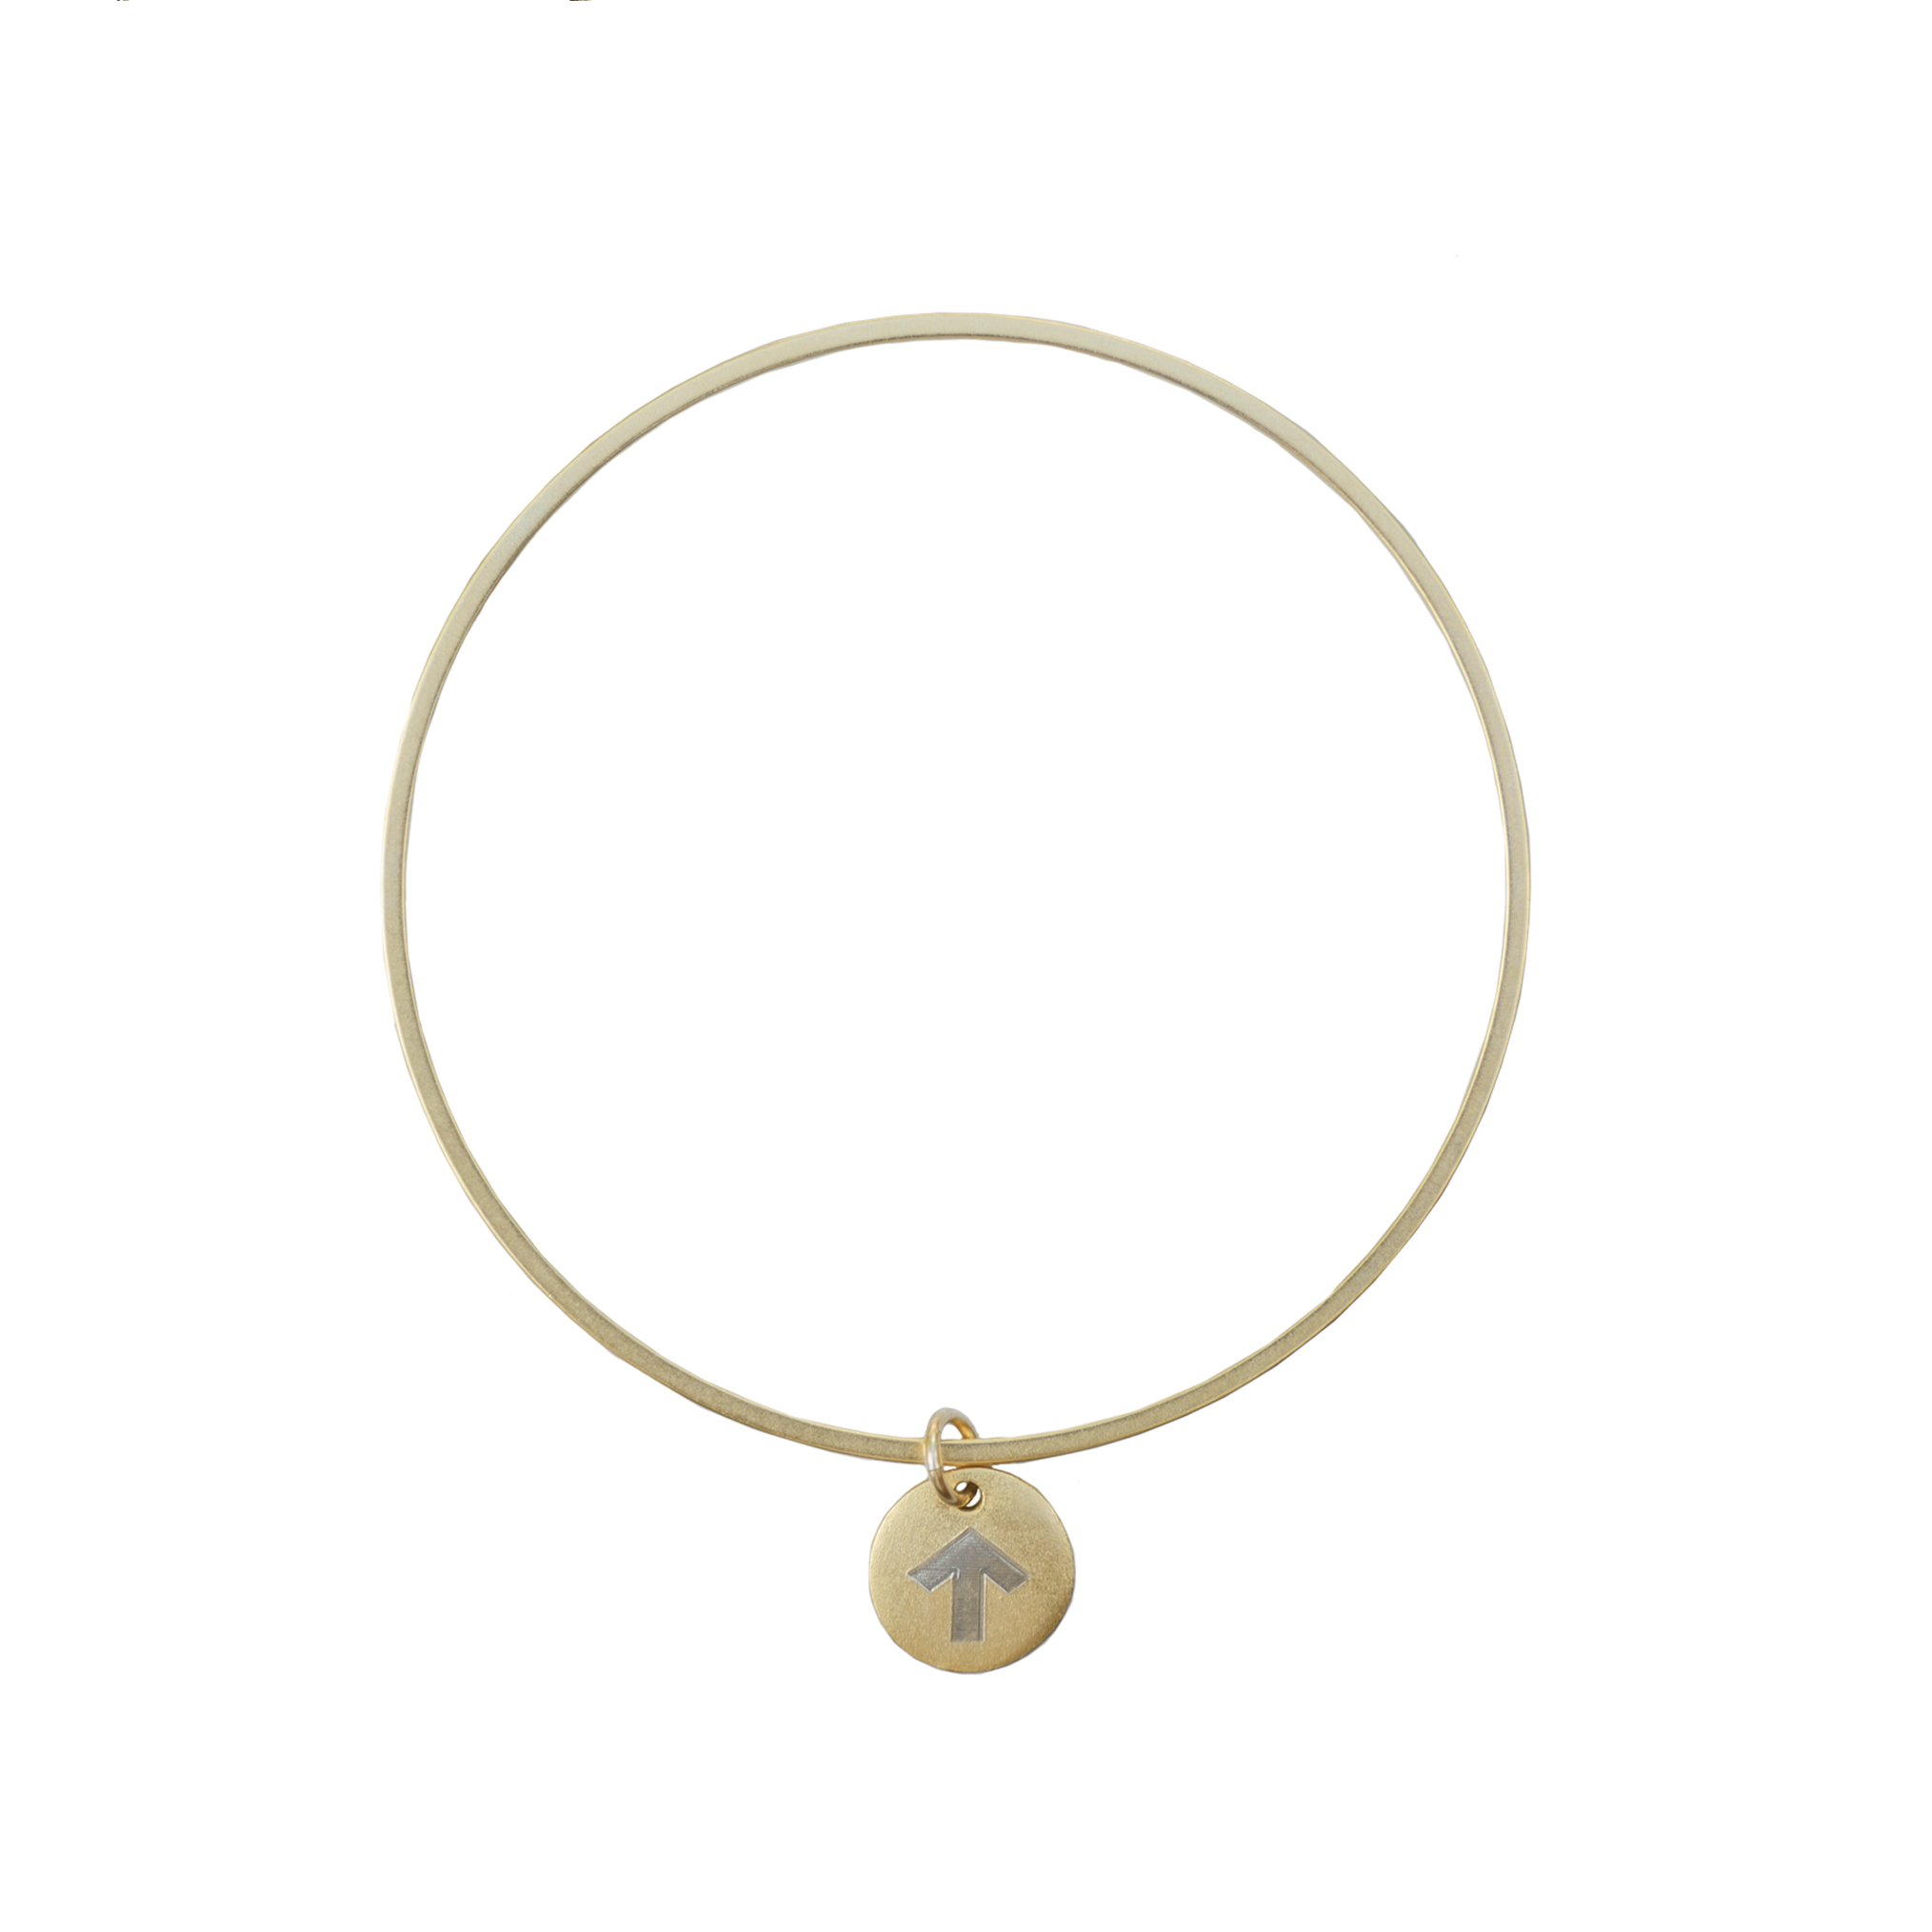 Golden Thread Heroic Strength Bangle